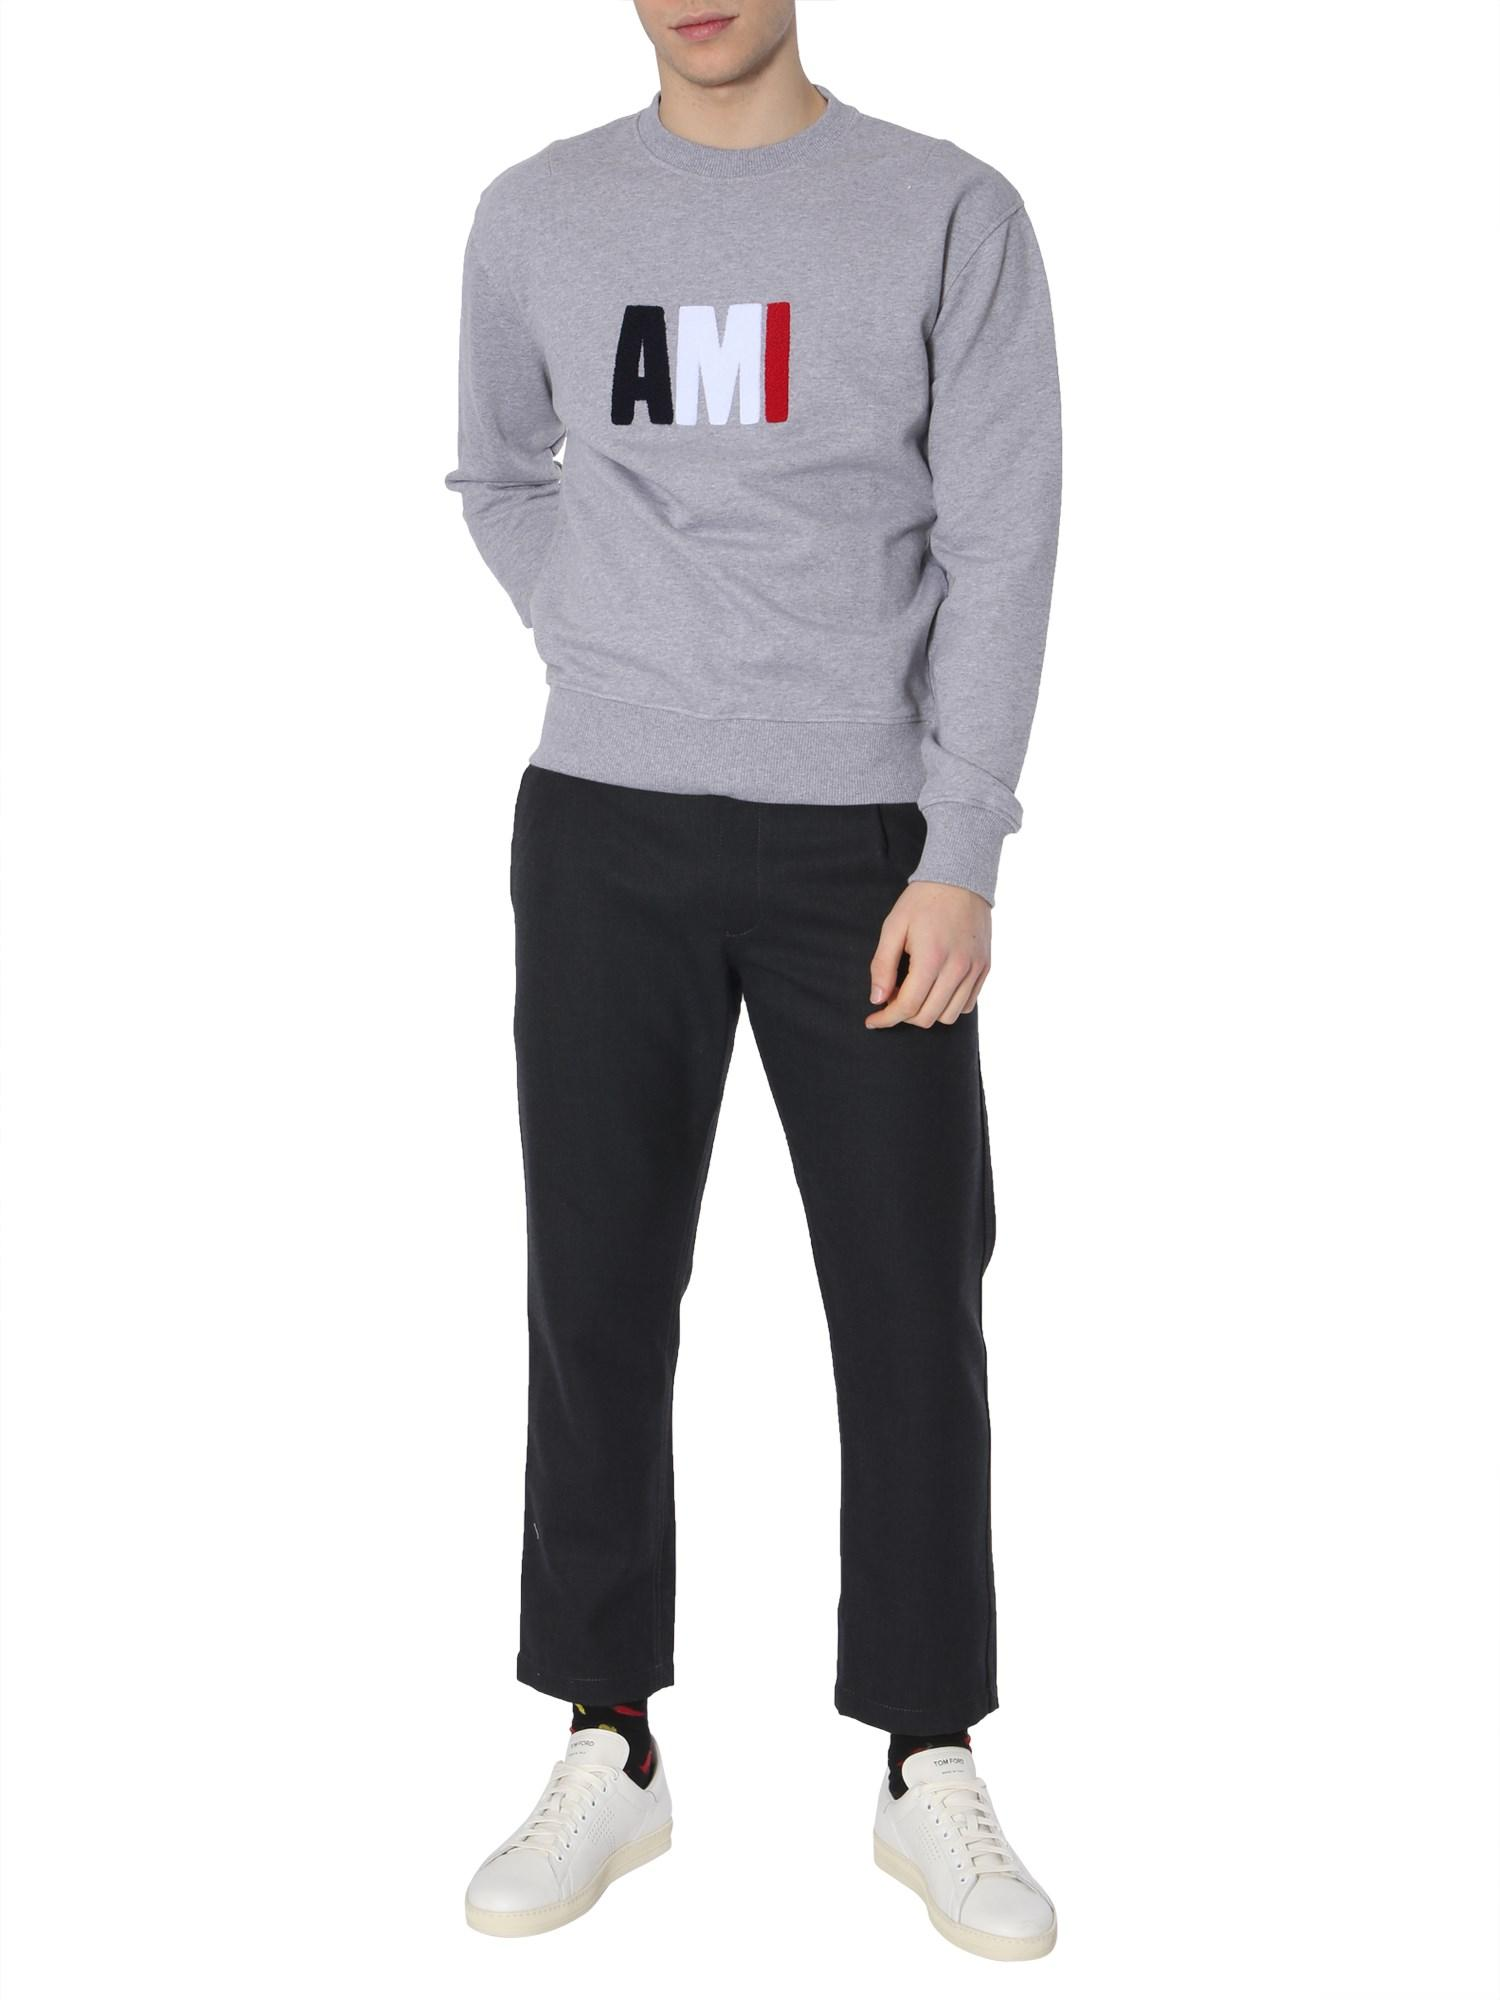 471a90bb Lyst - AMI Cotton Sweatshirt With Embroidered Sponge Logo in Gray ...